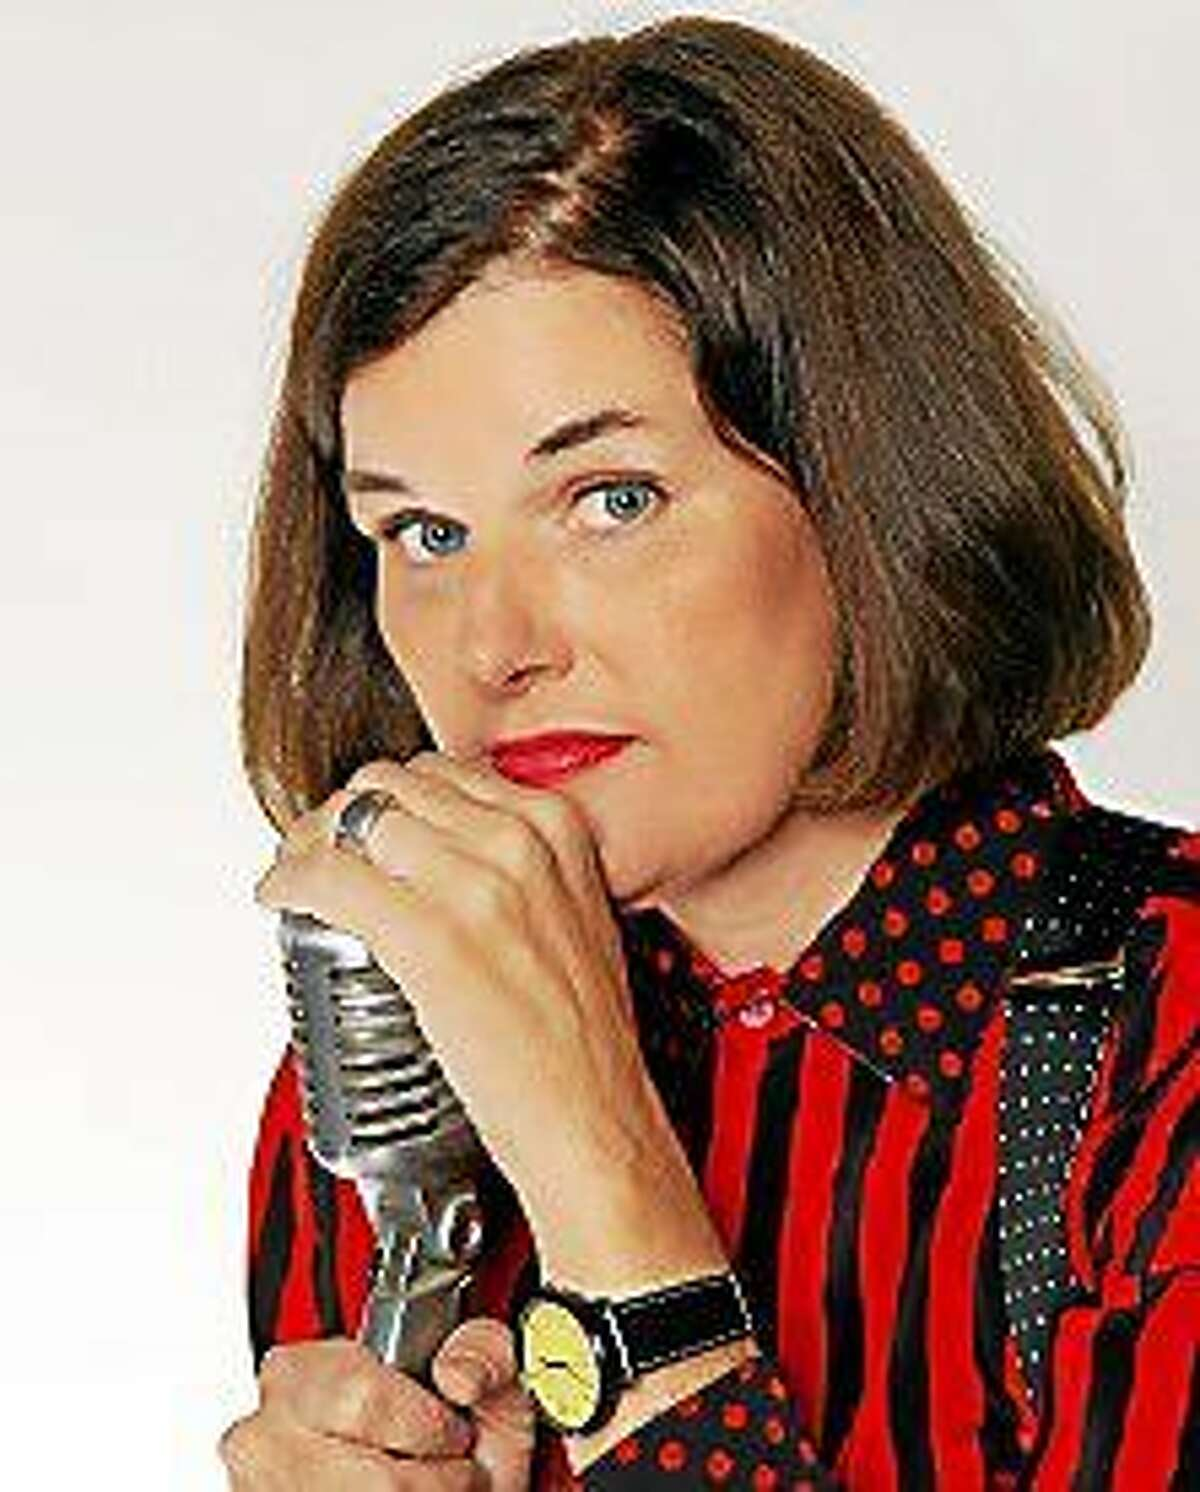 Submitted photo - Paula Poundstone Stand up comedian, author, actress and commentator Paula Poundstone is set to perform her comedy show at the Infinity Music Hall & Bistro in Norfolk and Hartford. Her first appearance will be at the new Infinity Hall in downtown Hartford on Friday night Sept. 12. She then moves on to the original Infinity Music Hall in Norfolk on Saturday, Sept. 13. Visit infinityhall.org.